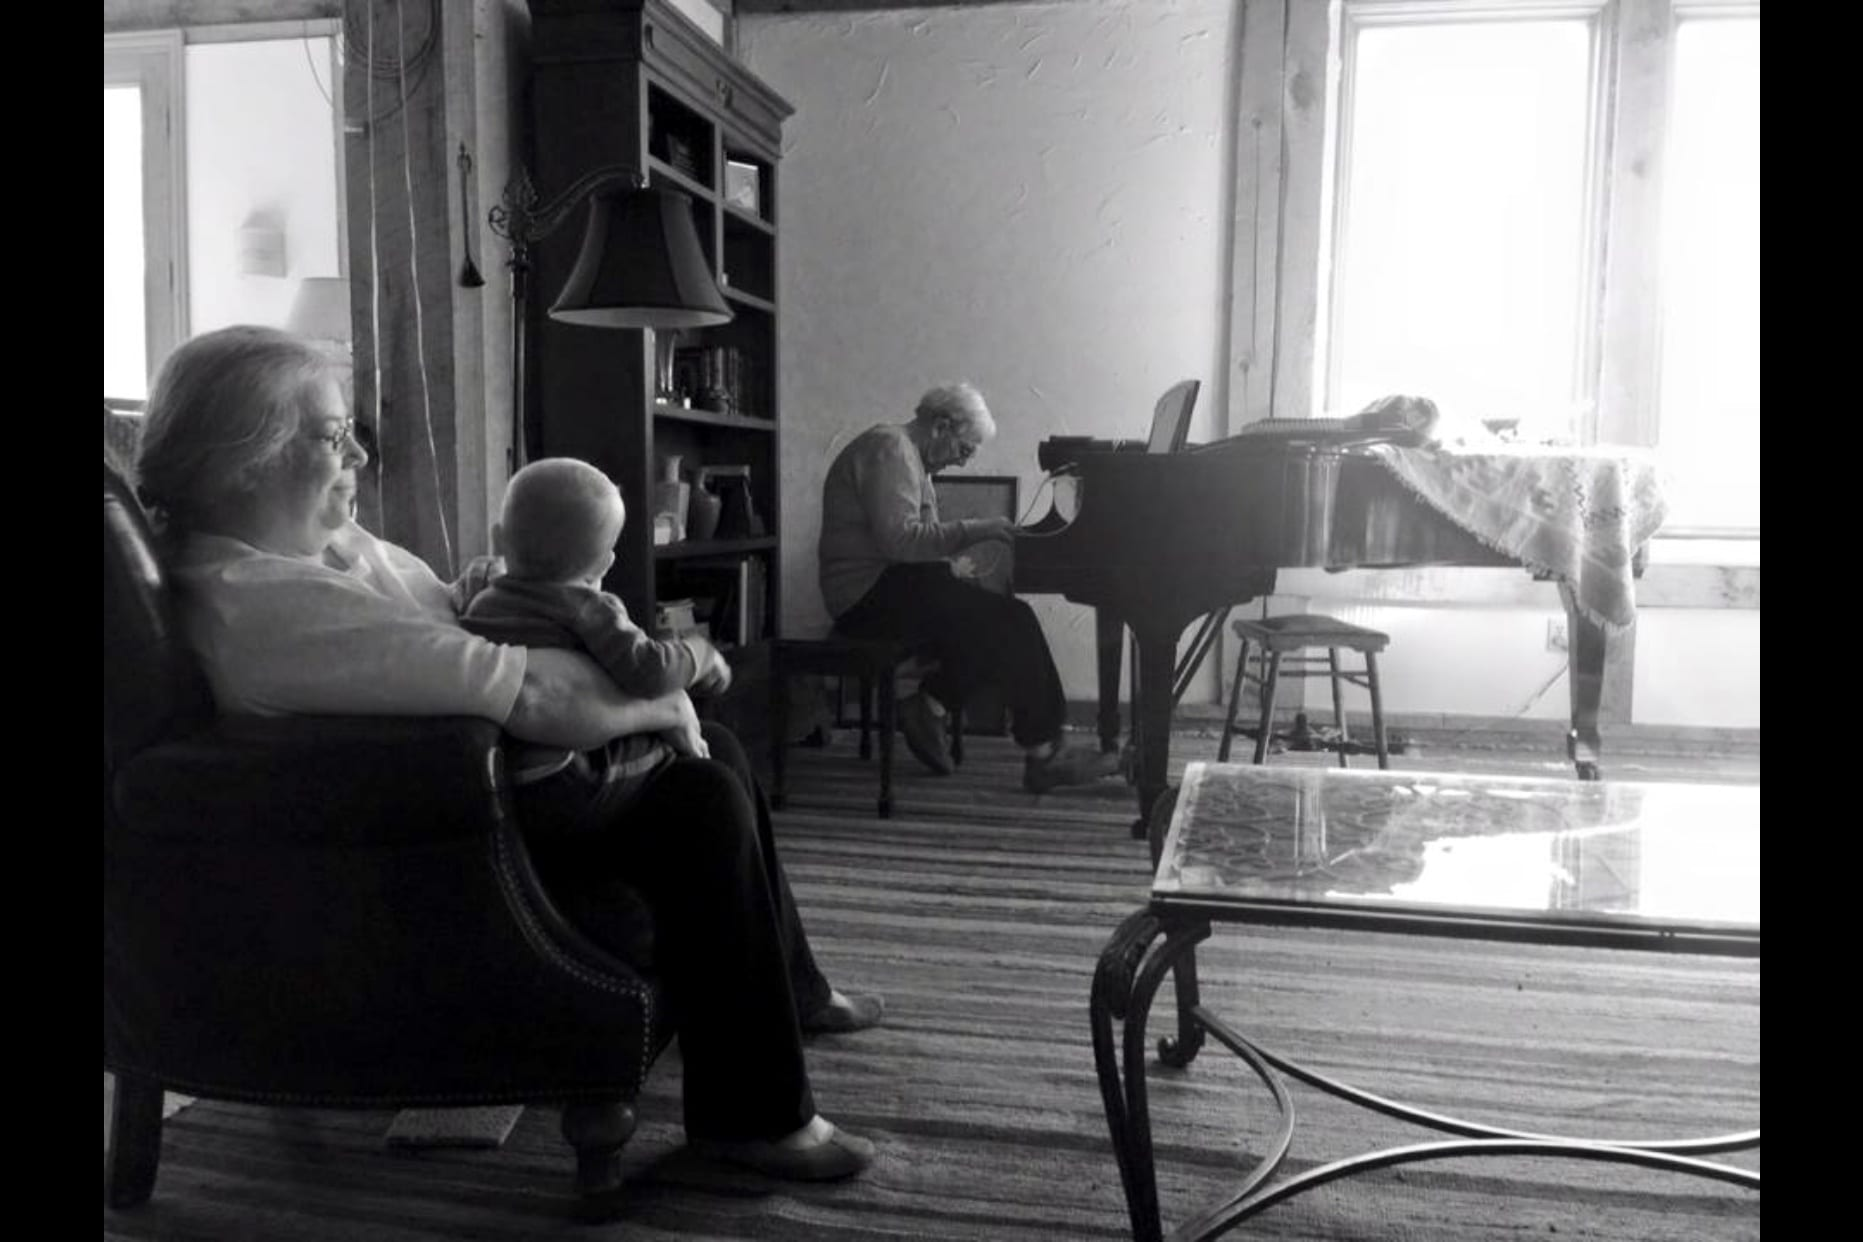 Ron playing piano and wife and grandchild listening